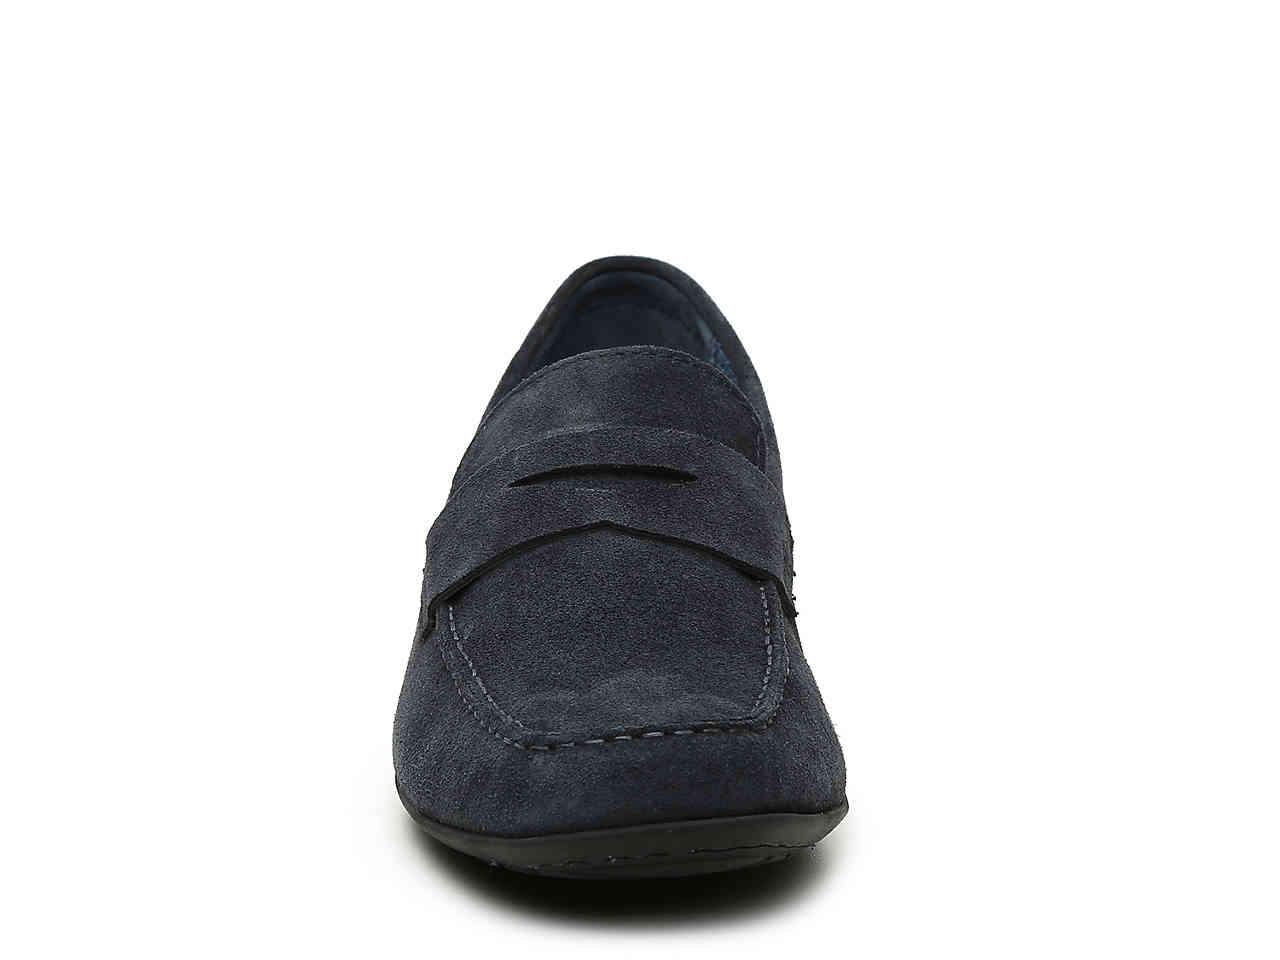 043bf3db275 Born - Blue Dave Penny Loafer for Men - Lyst. View fullscreen